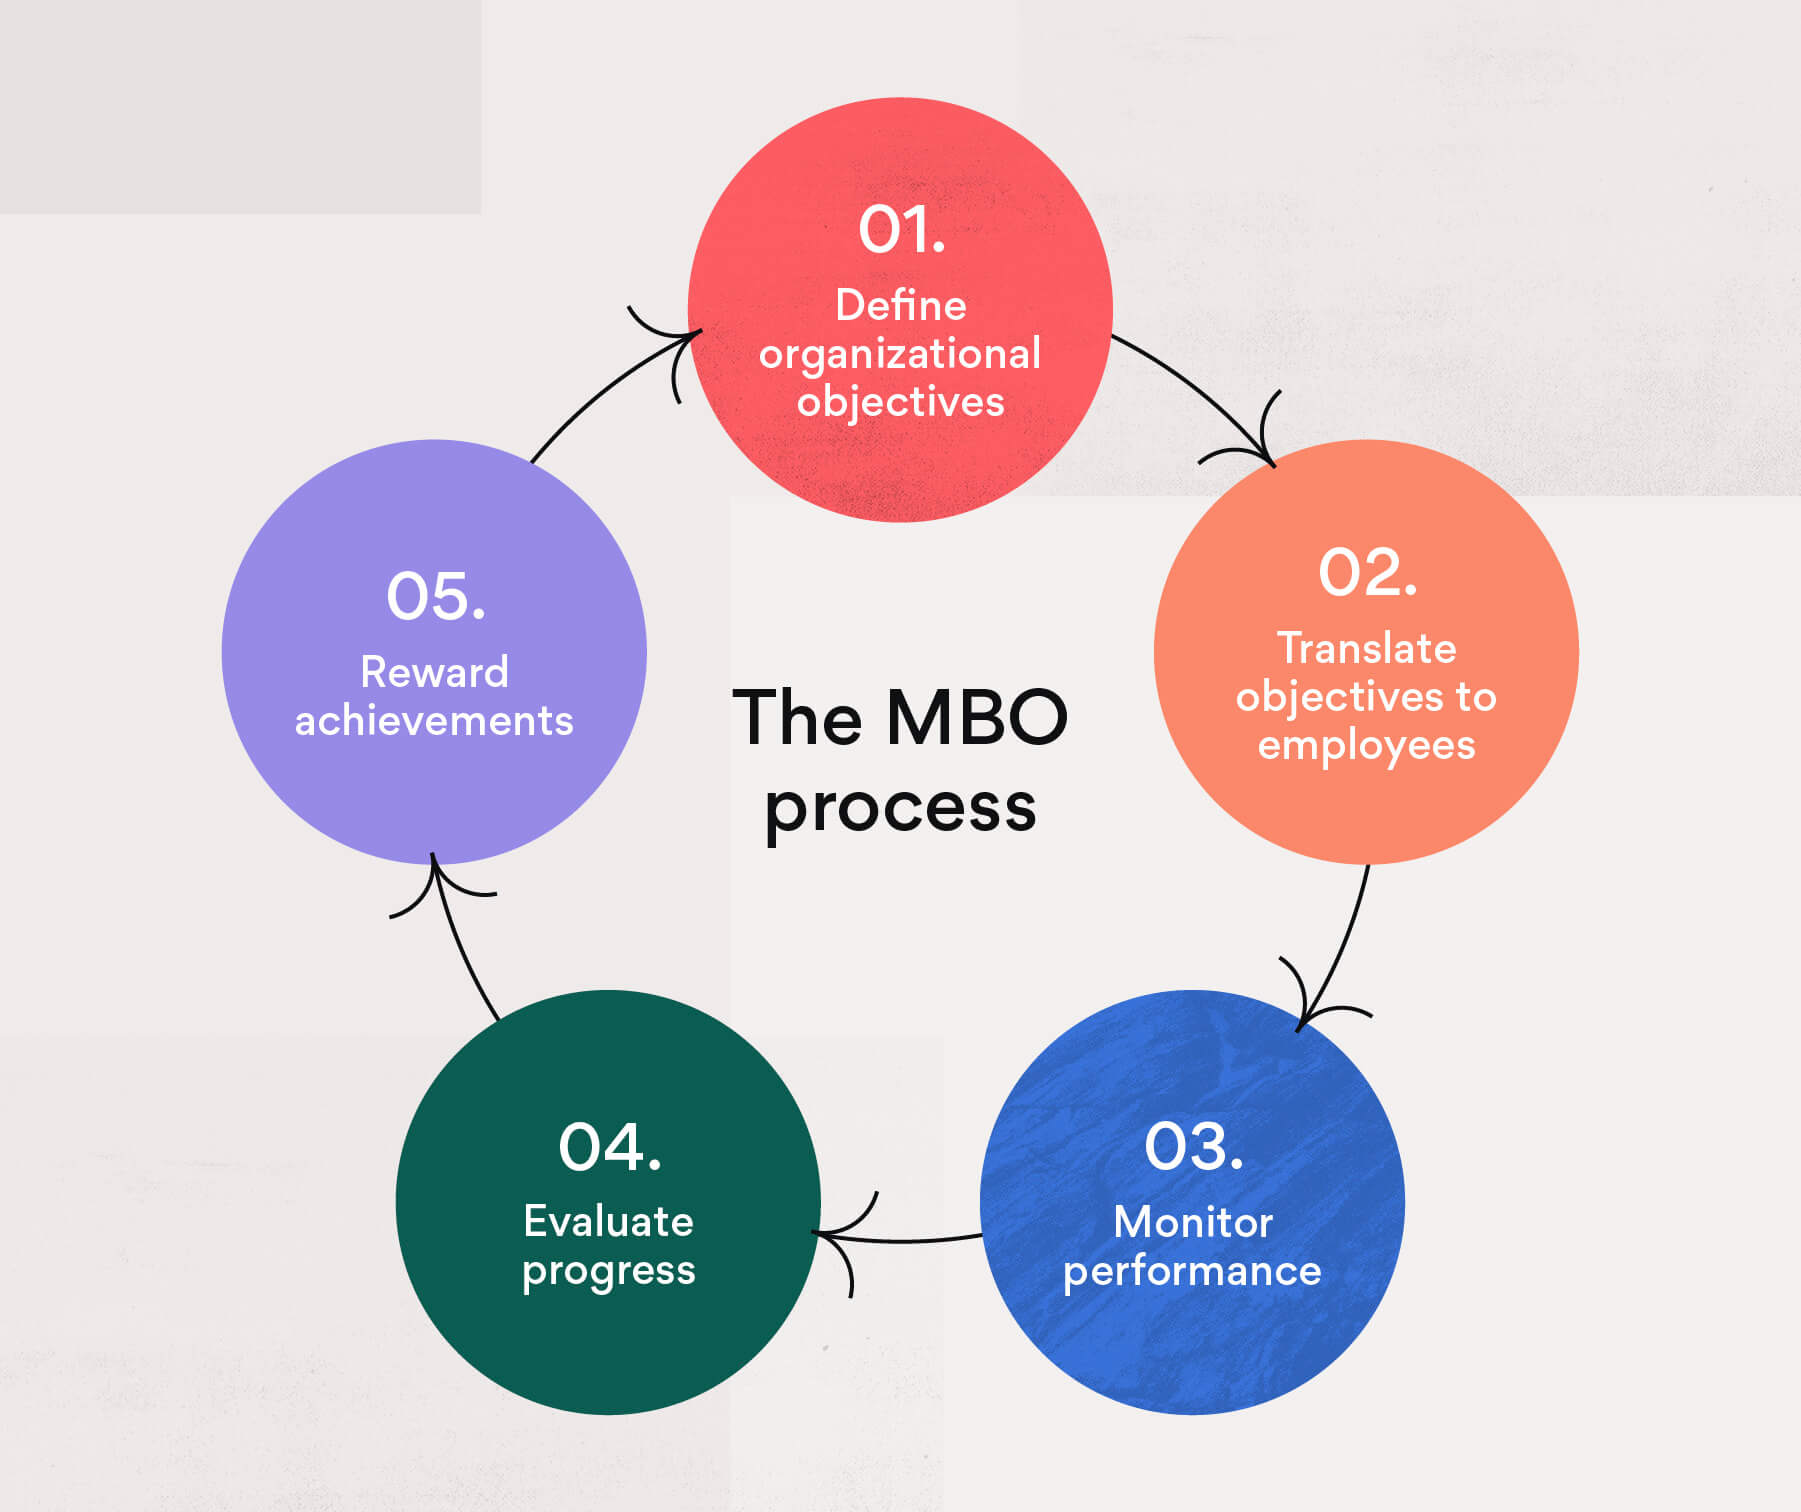 The 5 step MBO process